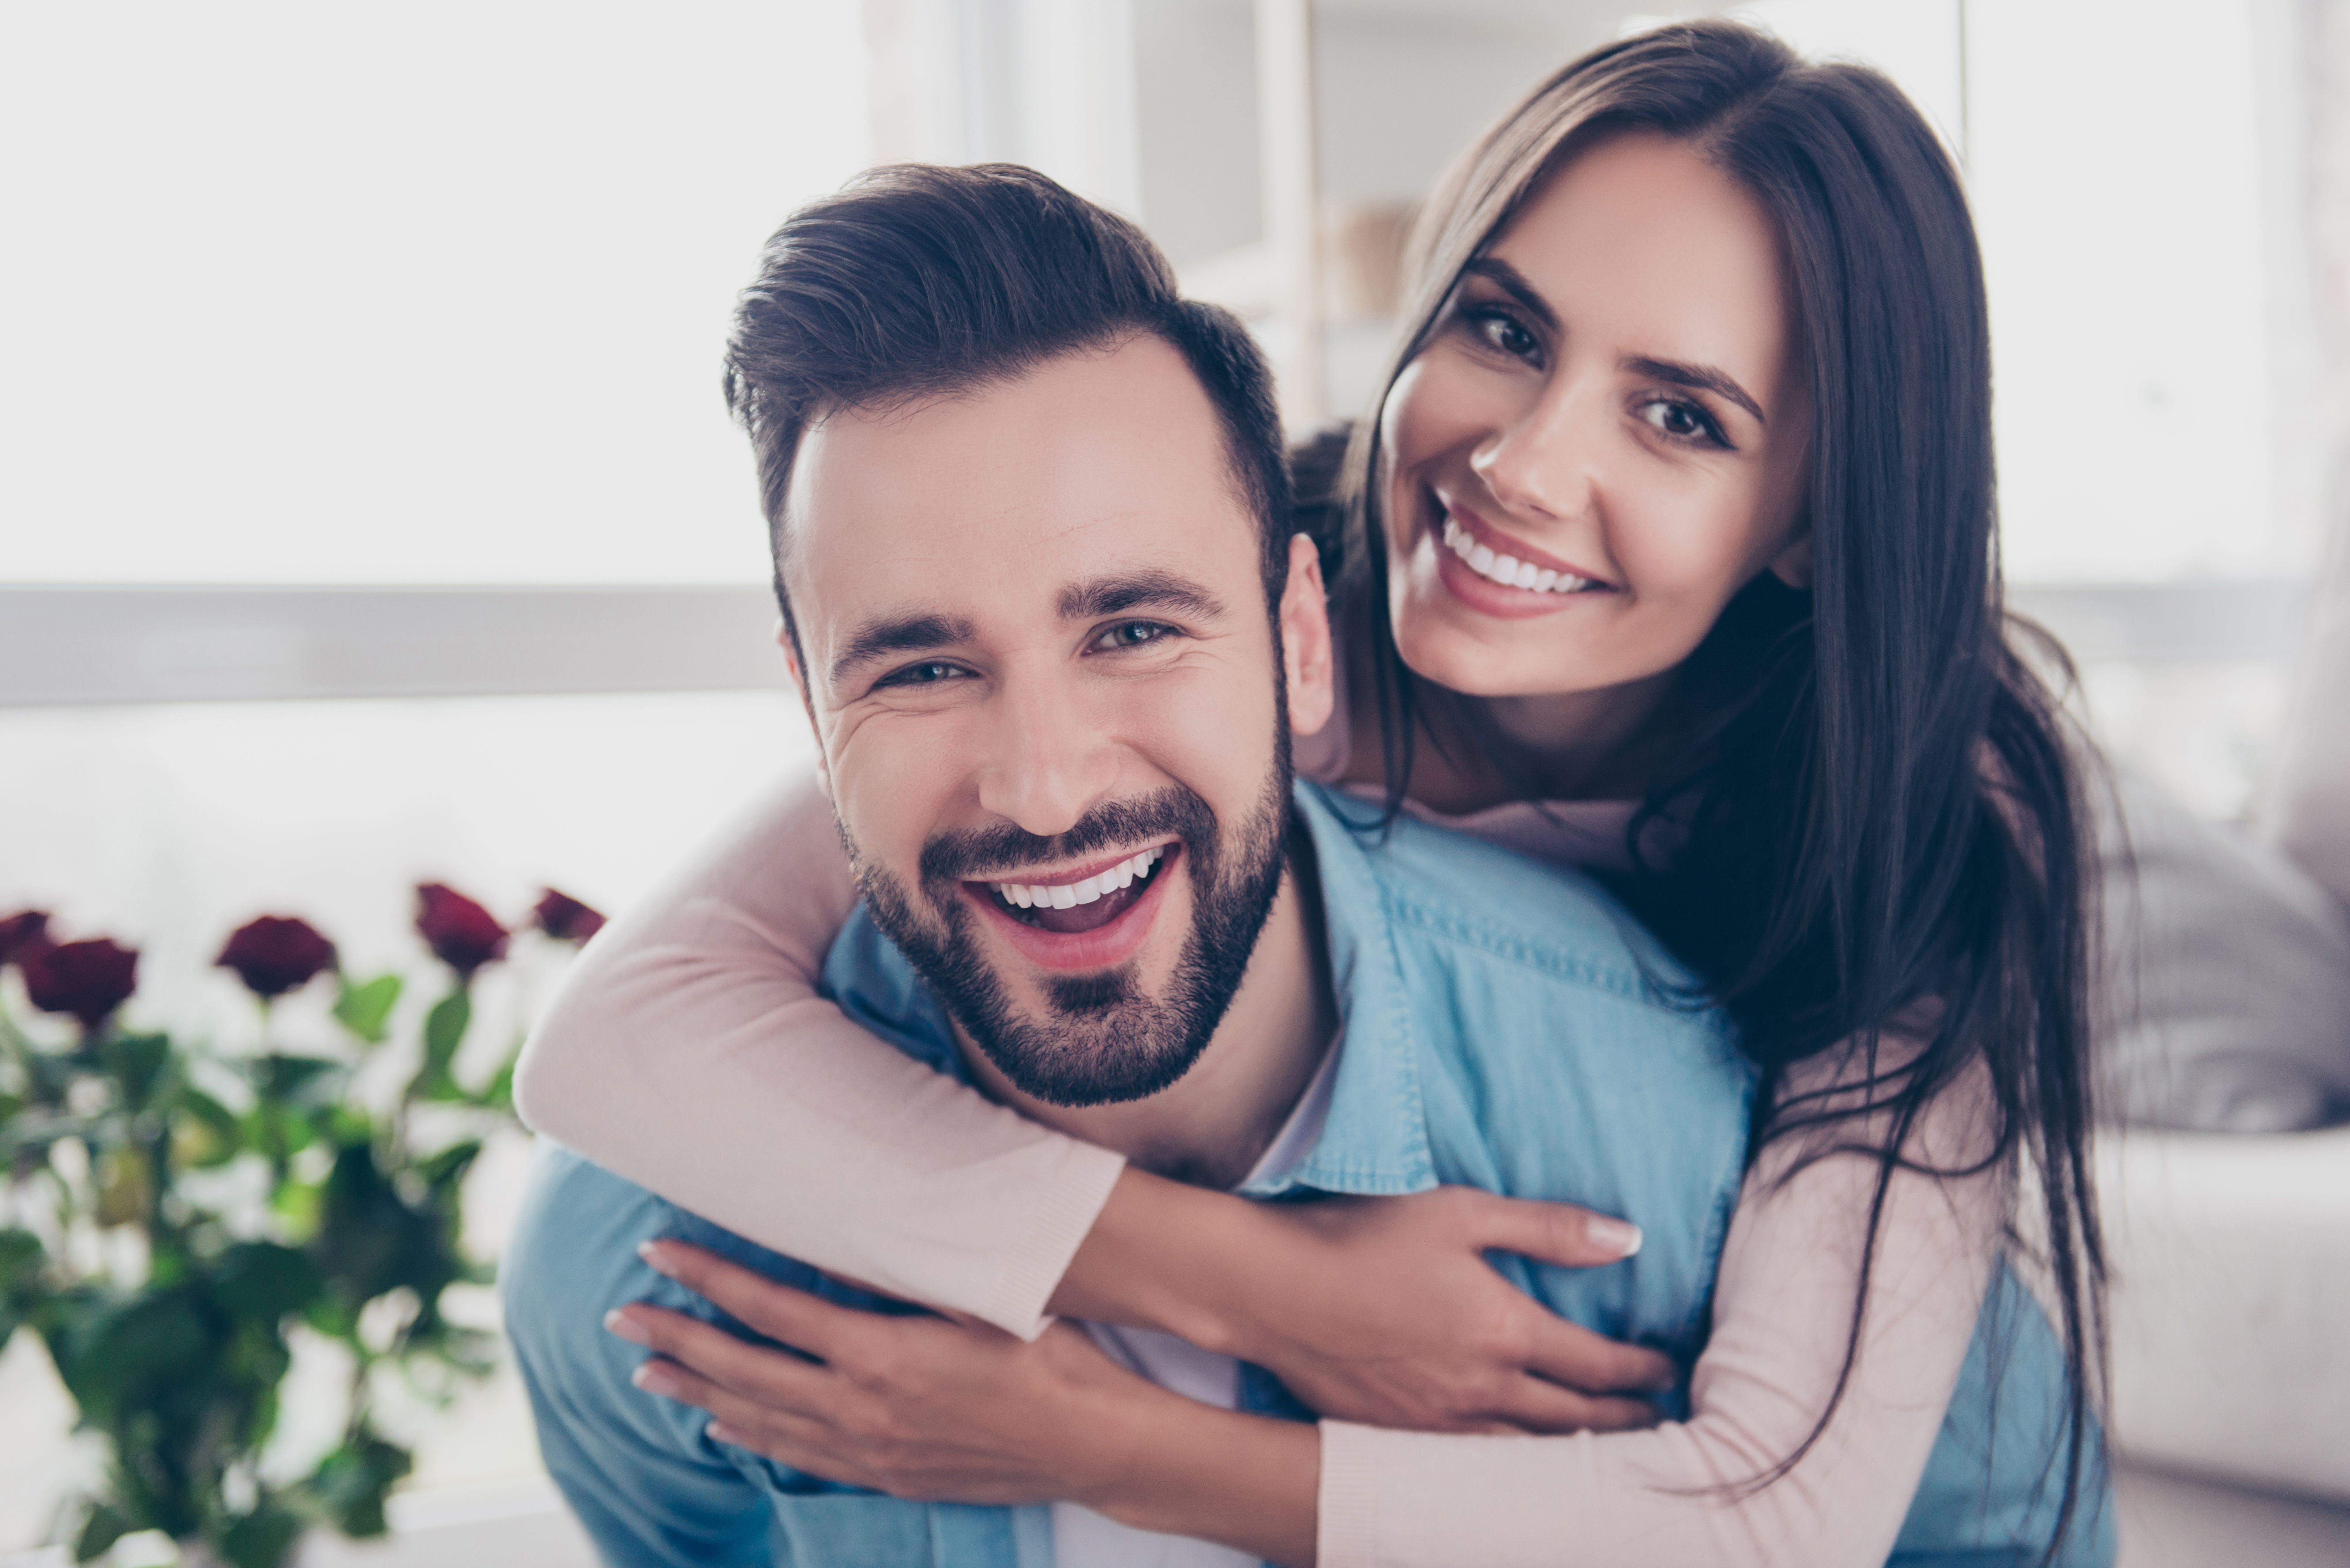 A couple smiling as the woman wraps his hands around her man. | Source: Shutterstock